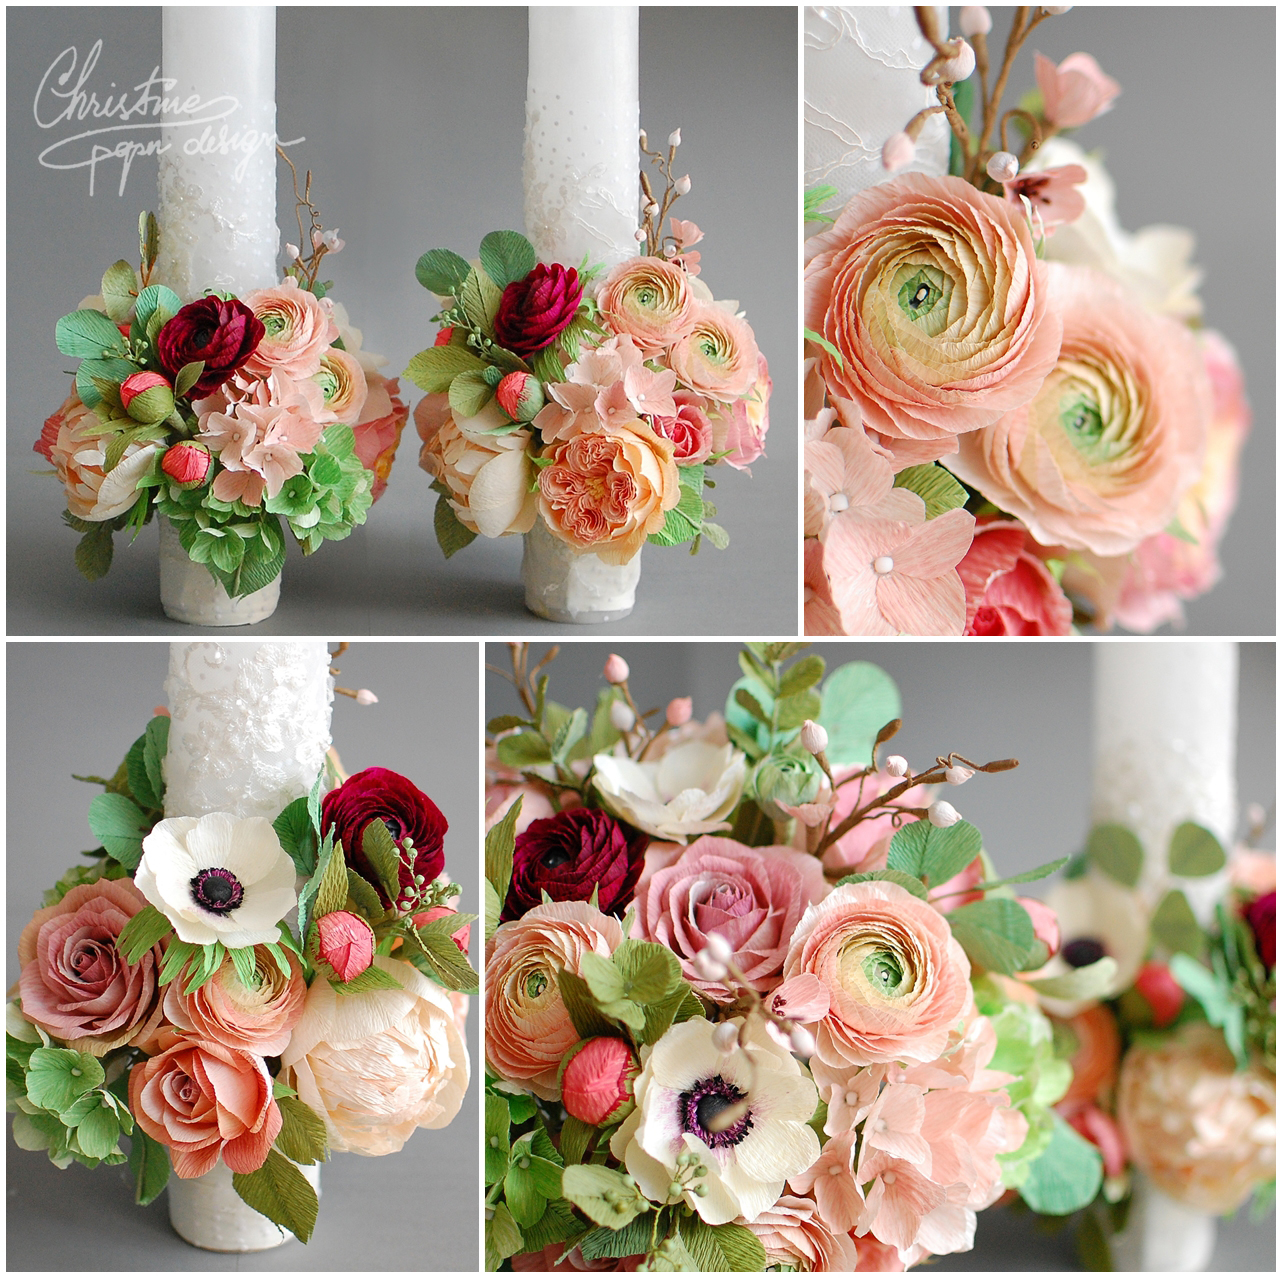 paper flower bridal bouquet - Christine paper design (2)